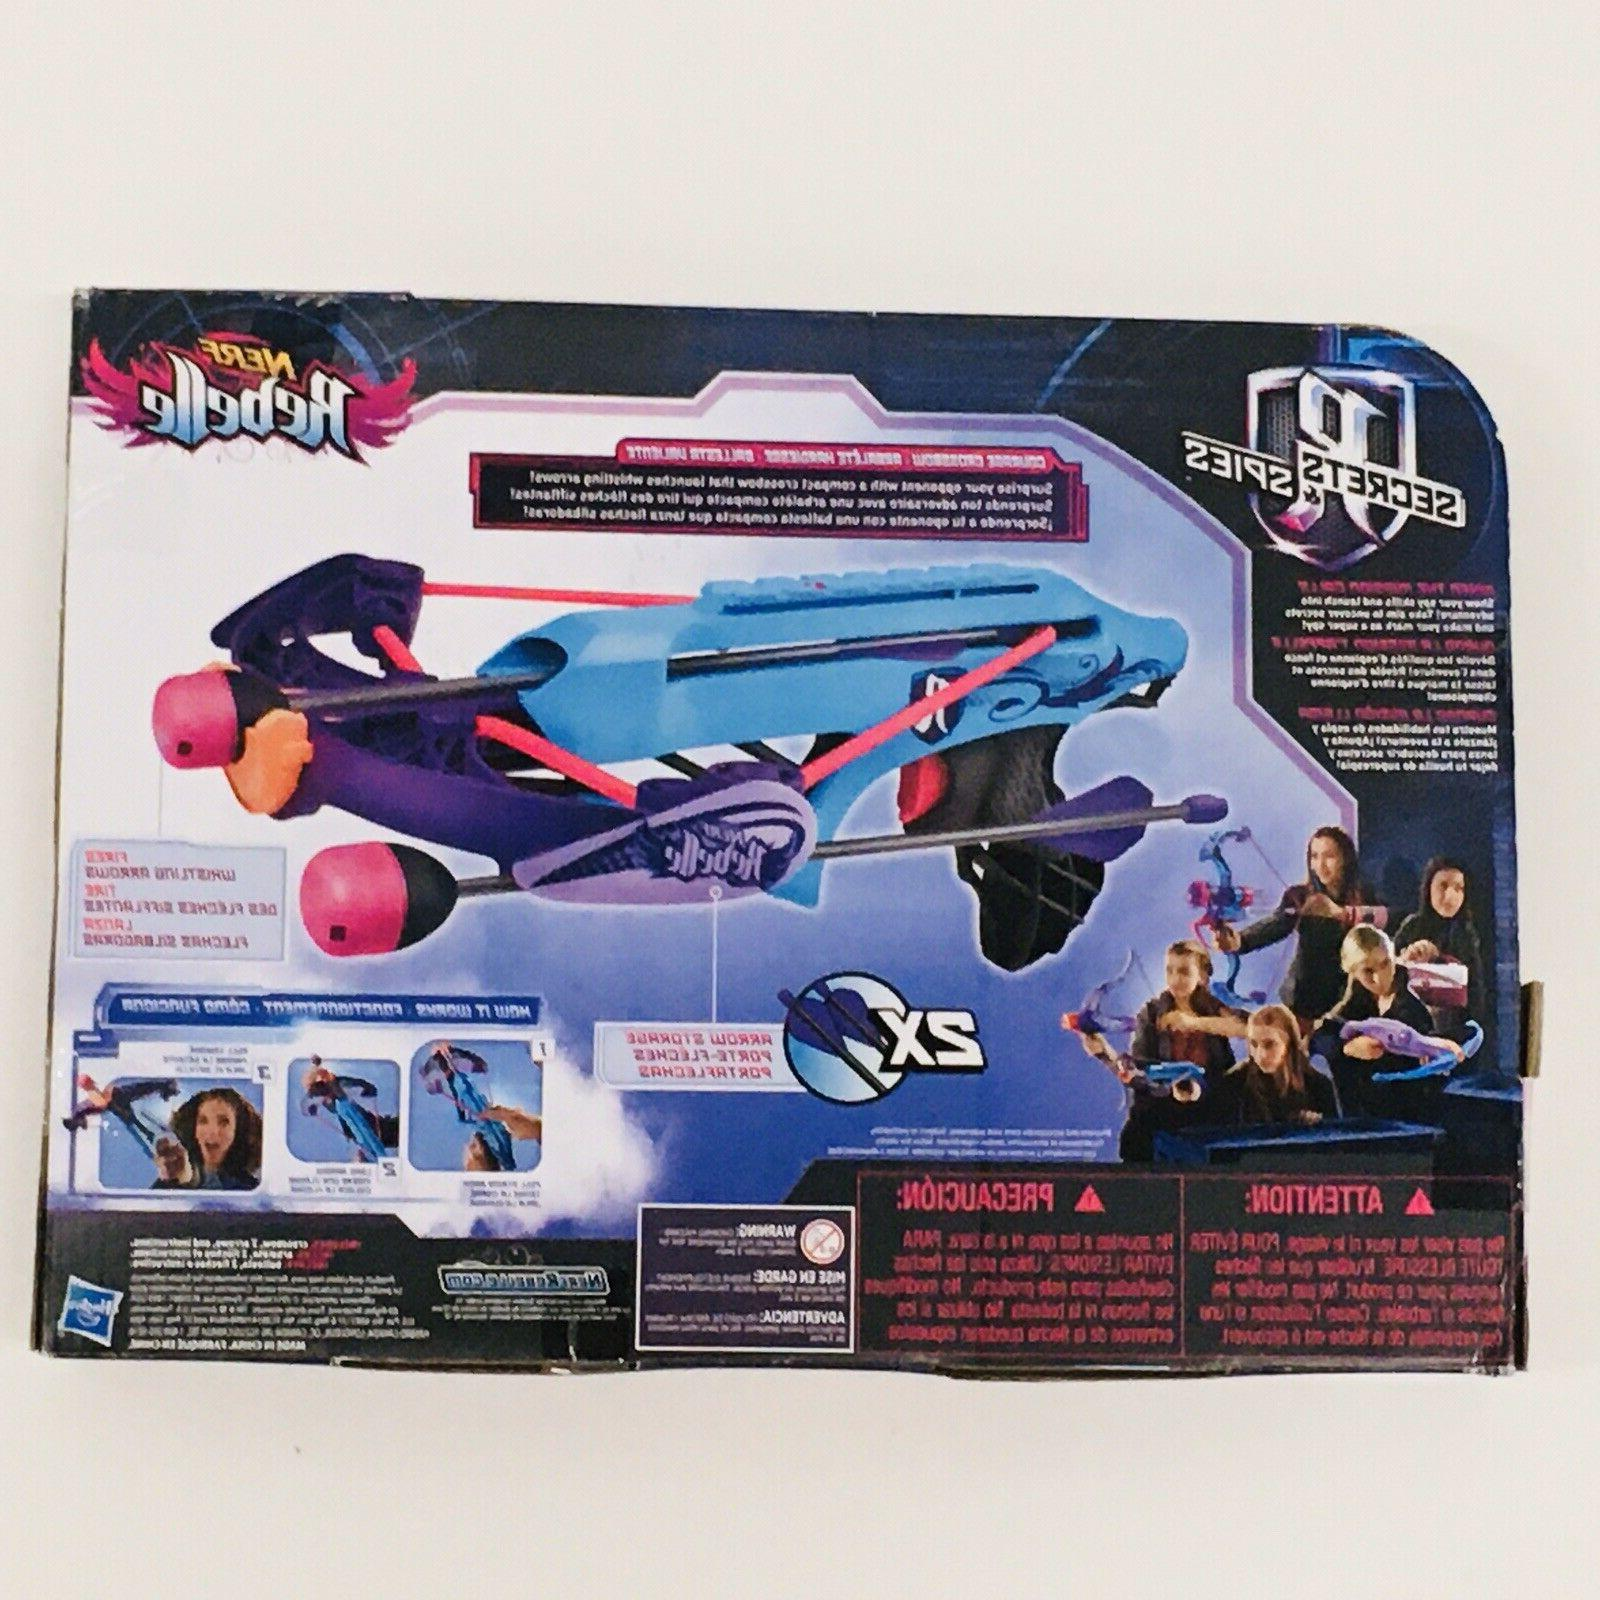 NEW NERF B1694 Courage Blaster Whistling Arrows